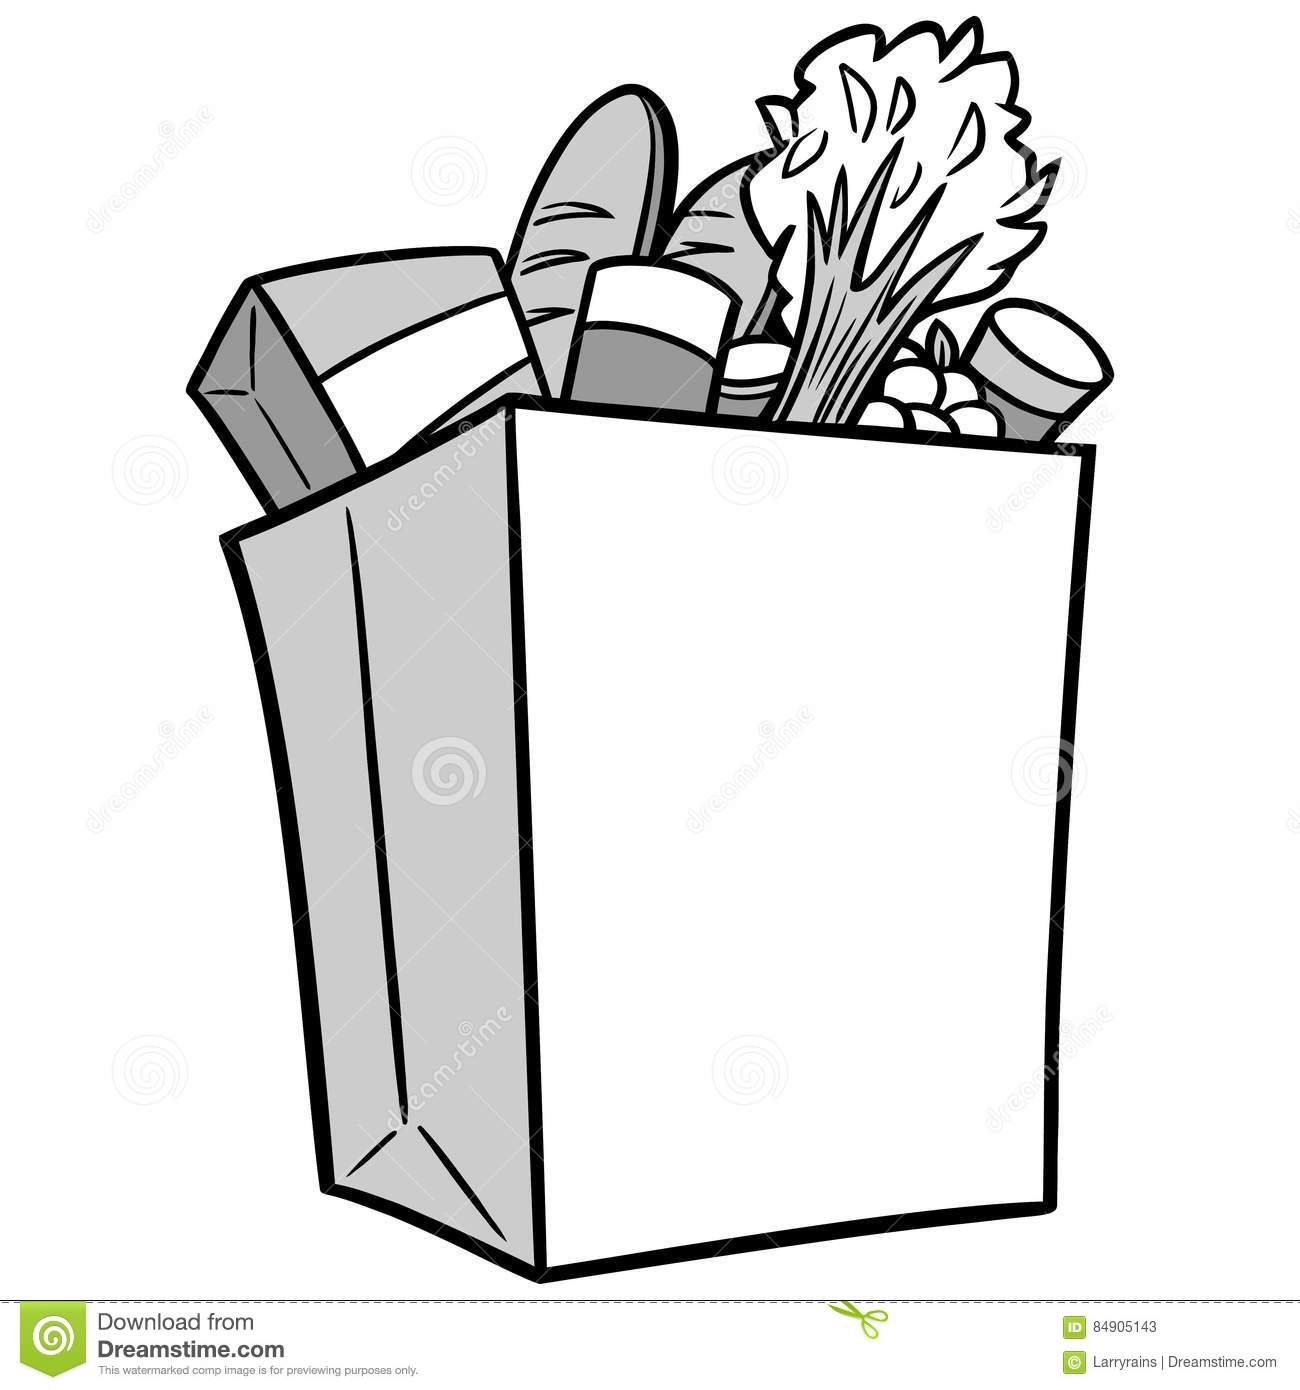 Grocery Bag Illustration Stock Vector Illustration Of